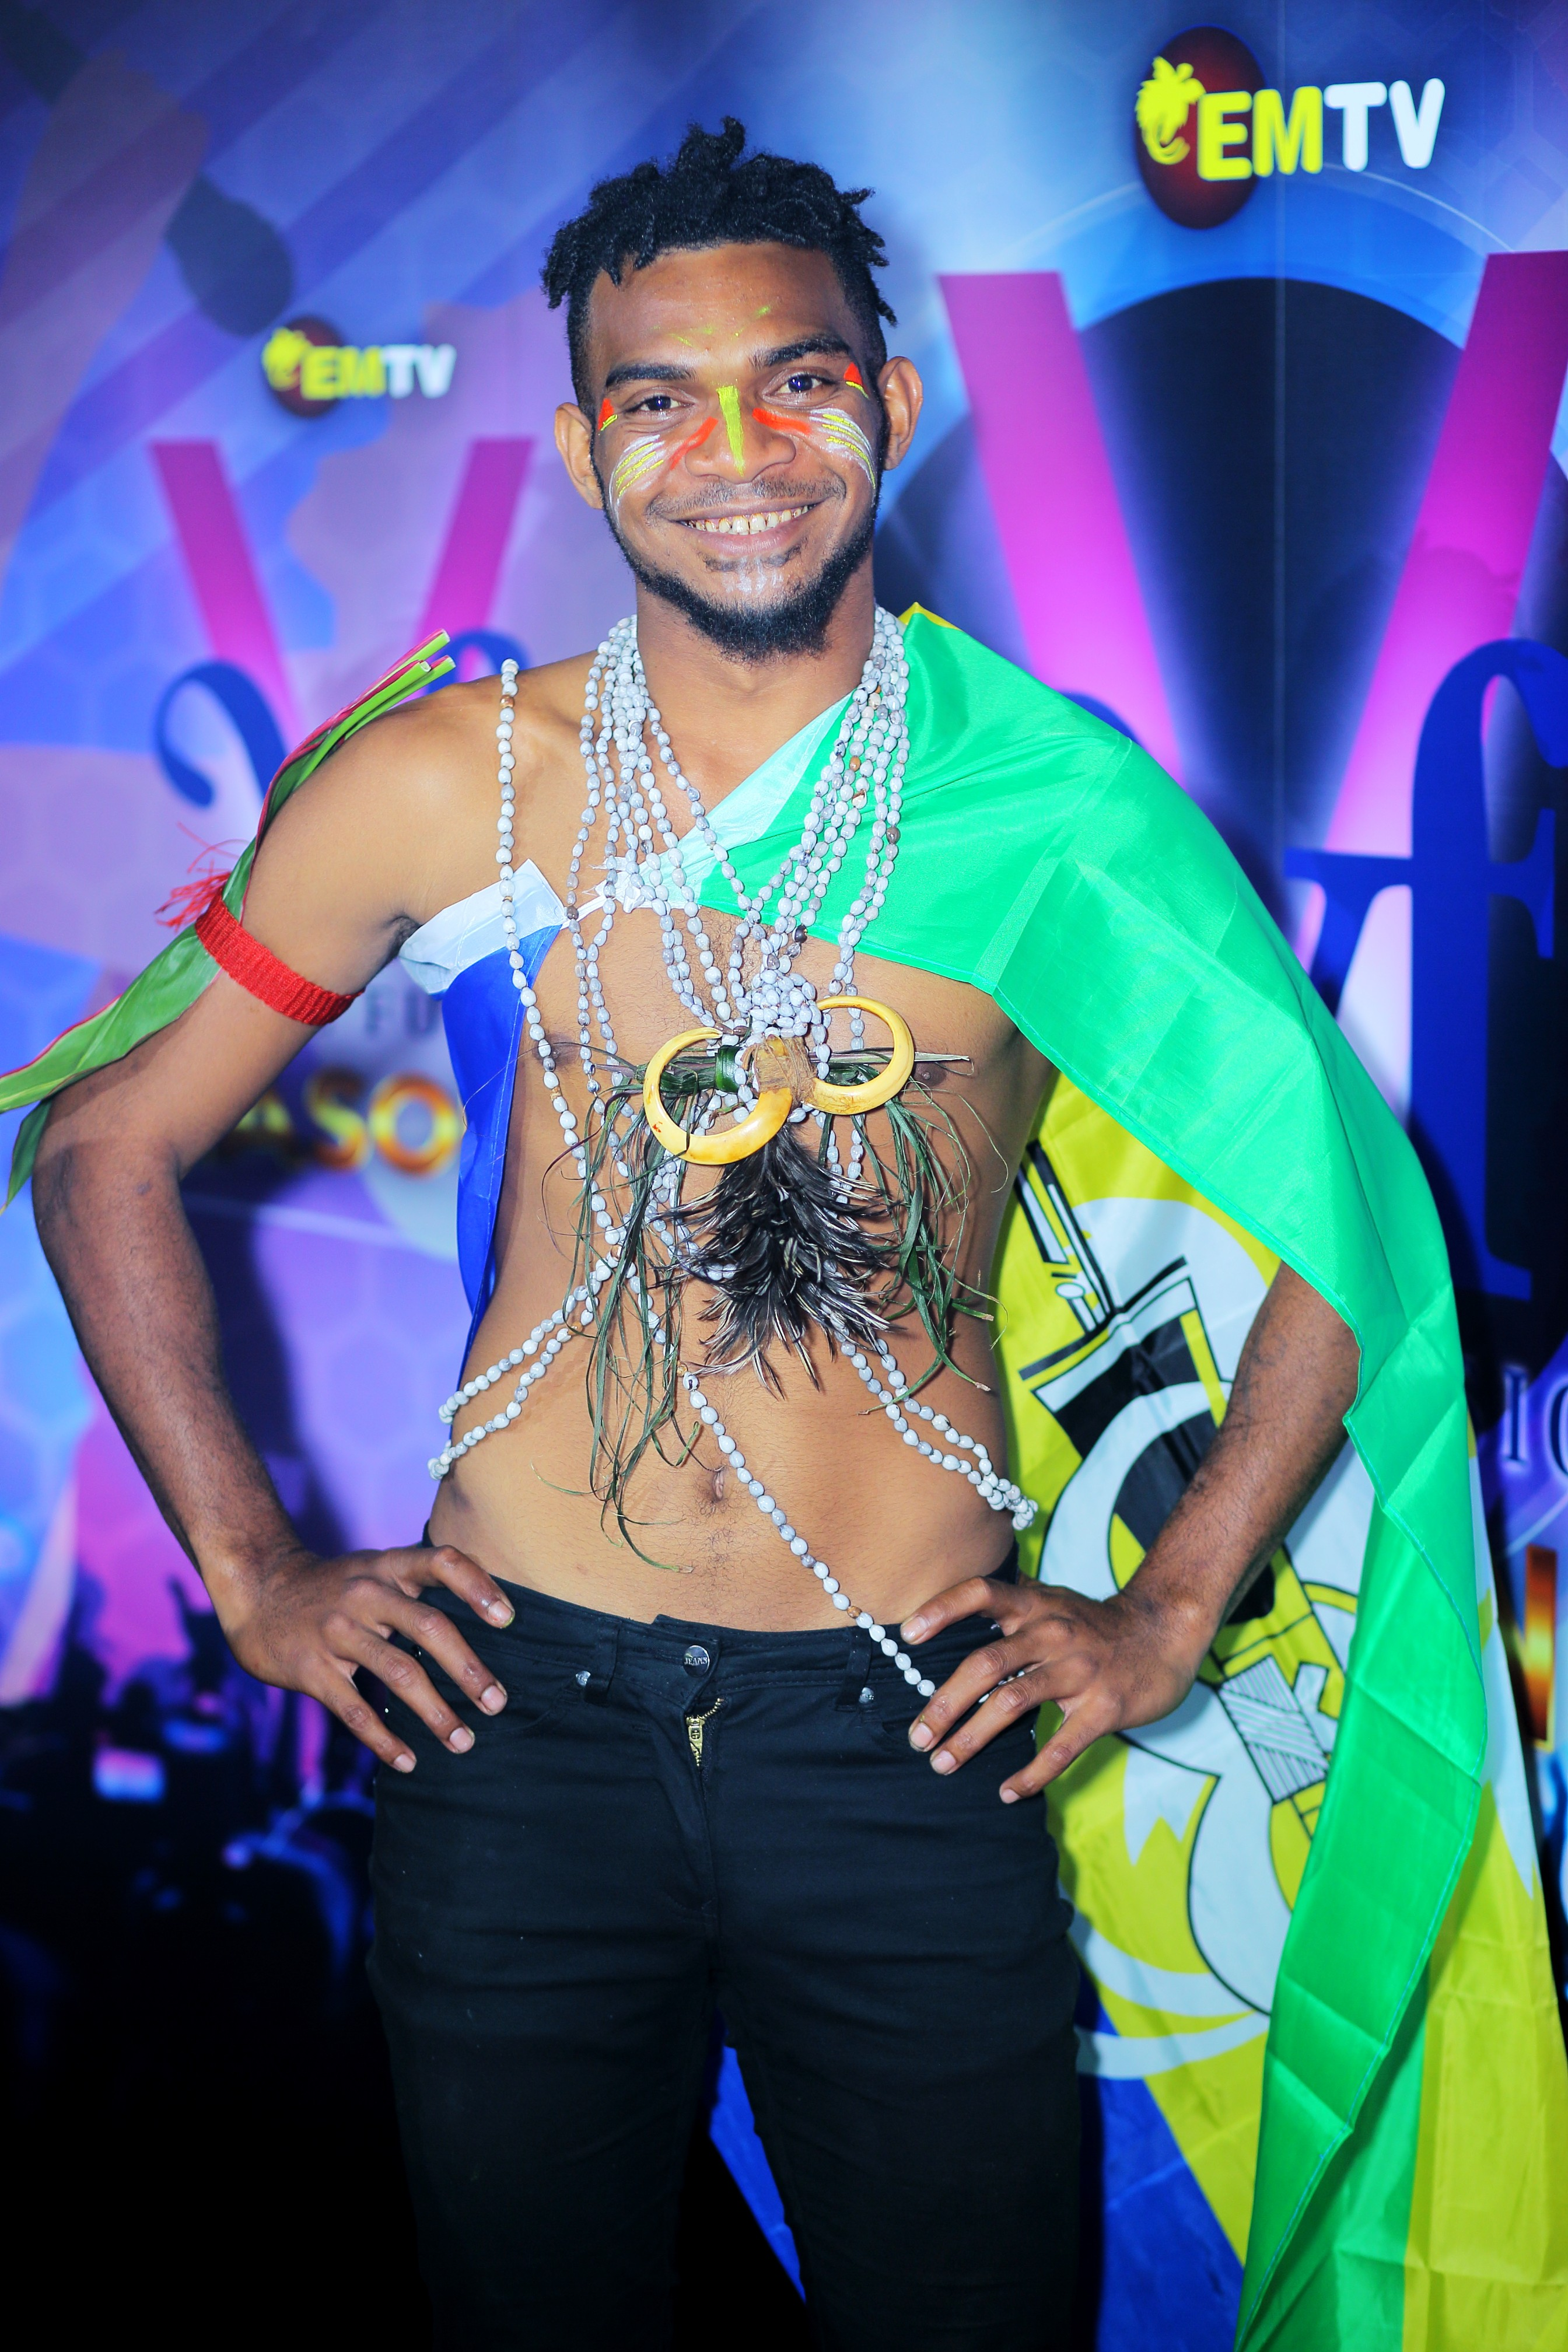 From the Lae auditions, Genisys Aaron says he auditioned for vocal fusion because it was his birthday. This talented young man is from Morobe and loves listening to Heavy Metal, Rock, Dubstep, RnB, and Rap music. The 22 year old says his musical icon is another 'Kumul bilong Morobe yet' - Honlly Issac.